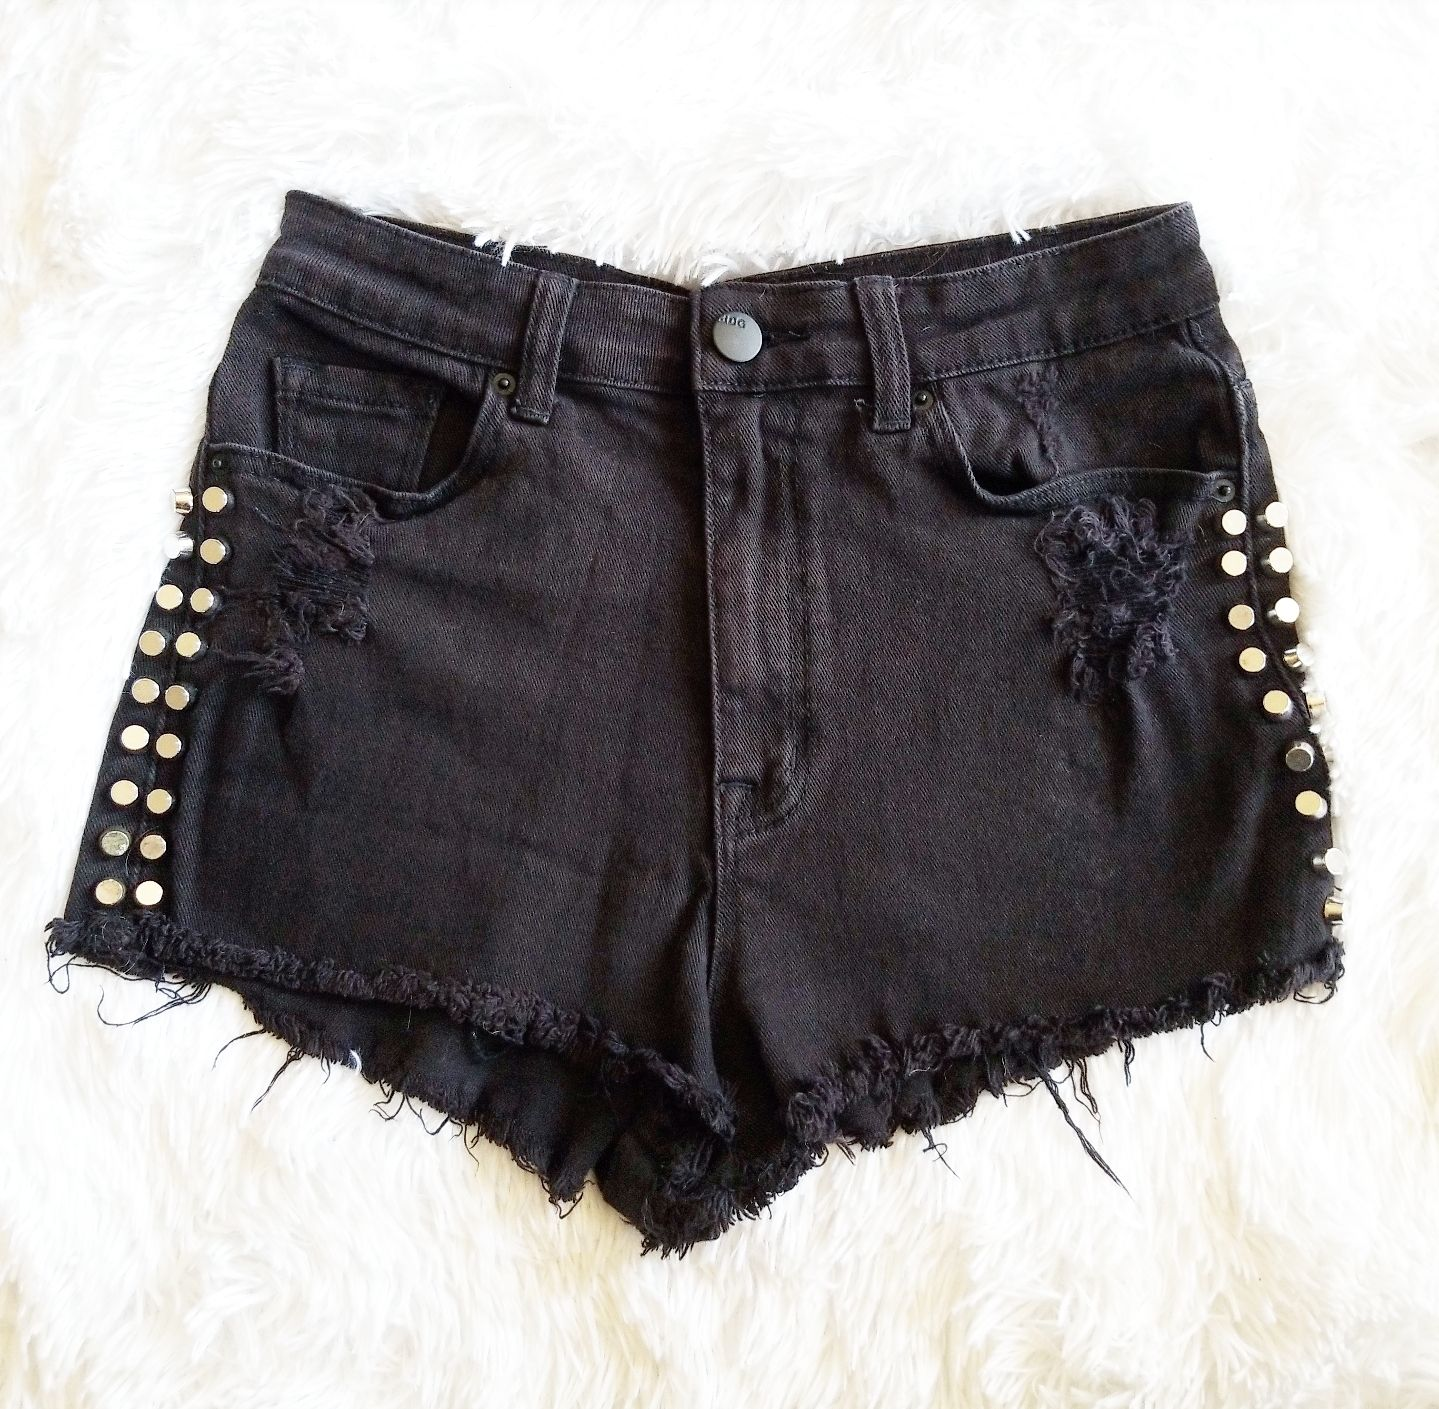 BDG UO High Rise Cheeky Stud Shorts